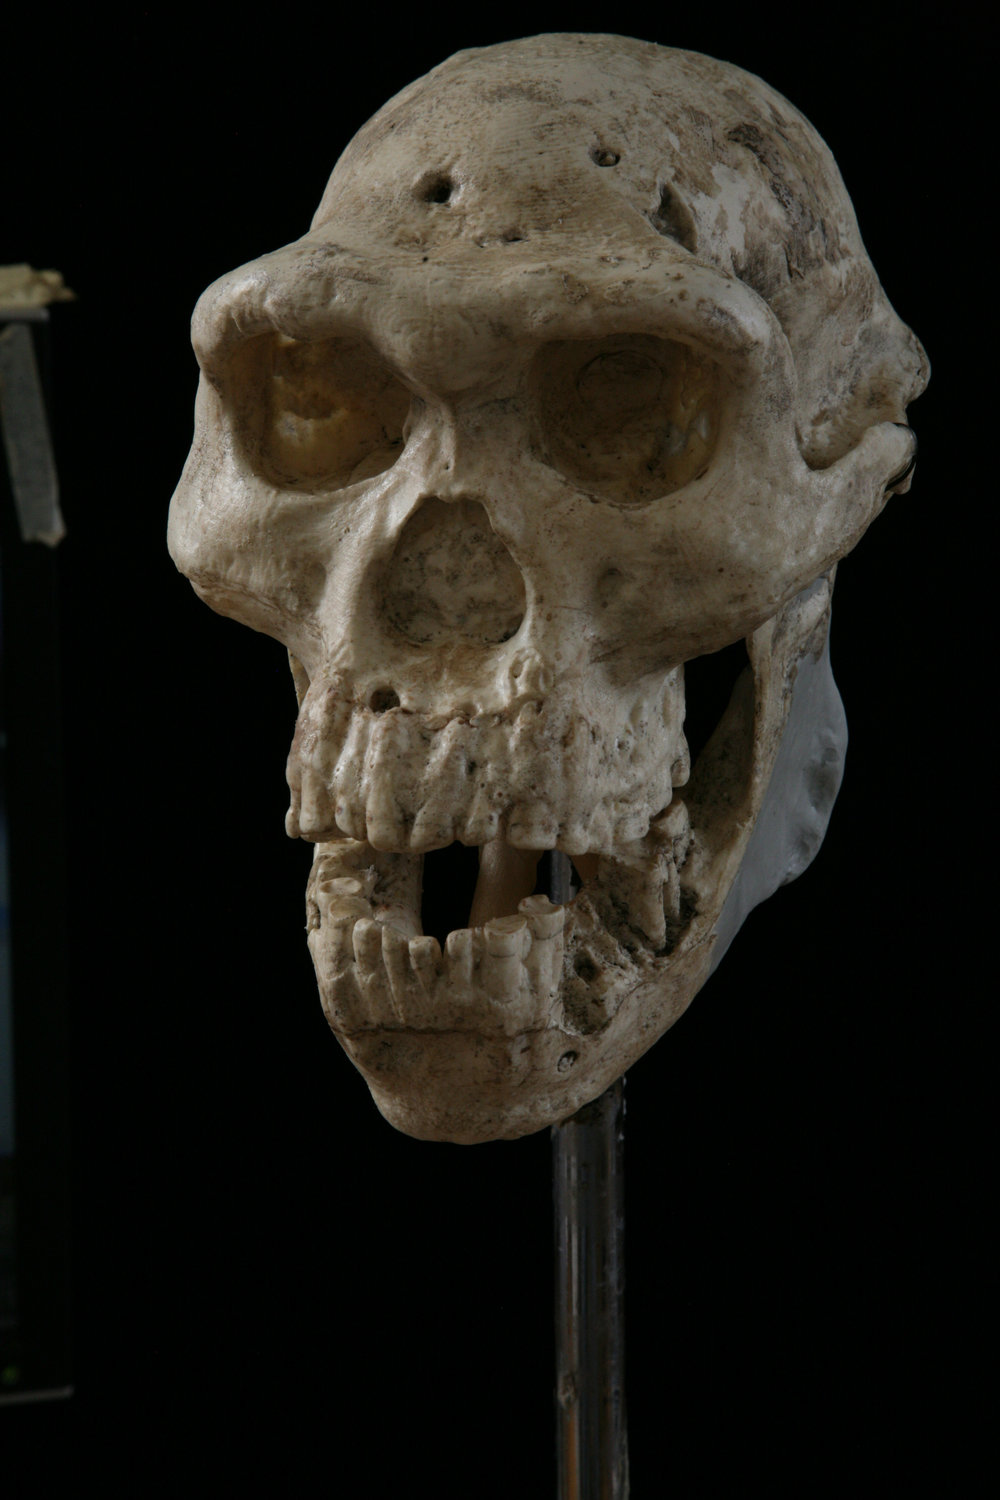 Skull 5 from Dmanisi (restored cast).